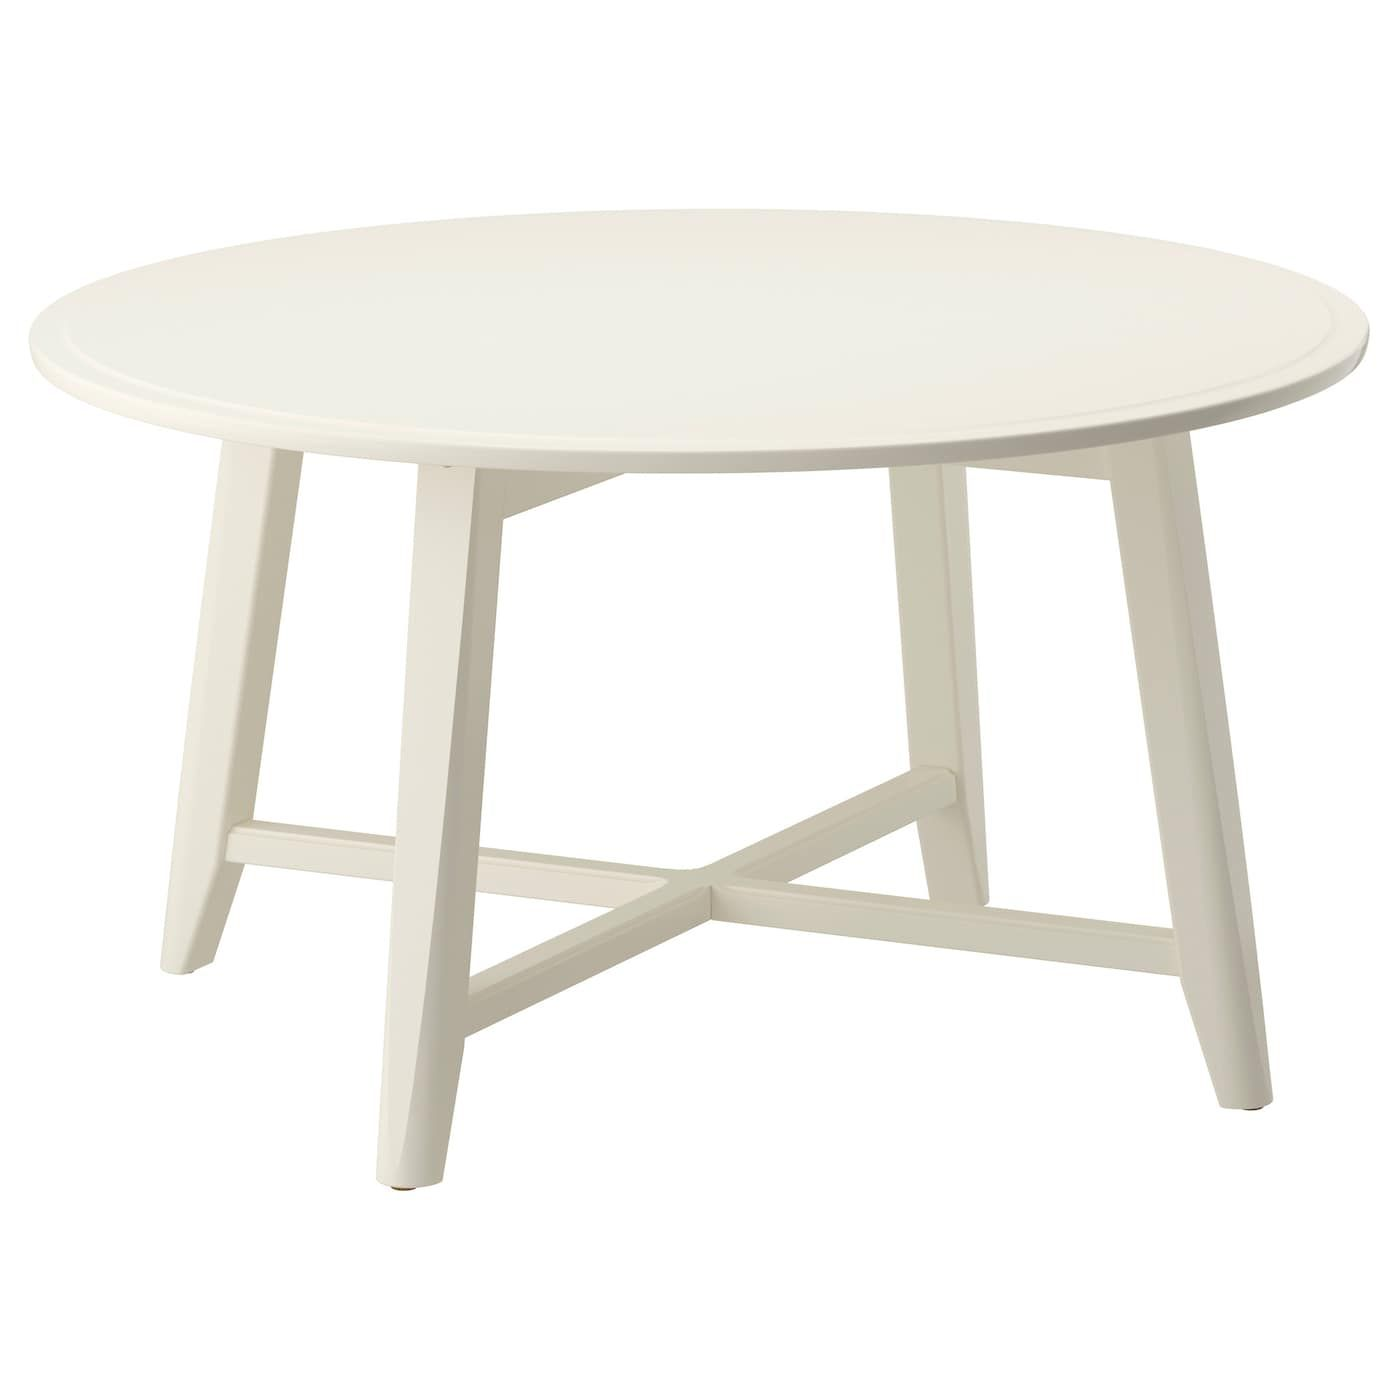 Kragsta Coffee Table White 35 3 8 Round Soft Shapes And Crafted Details Are Characteristic Of Kragsta Co Coffee Table White Ikea Coffee Table Coffee Table [ 1400 x 1400 Pixel ]